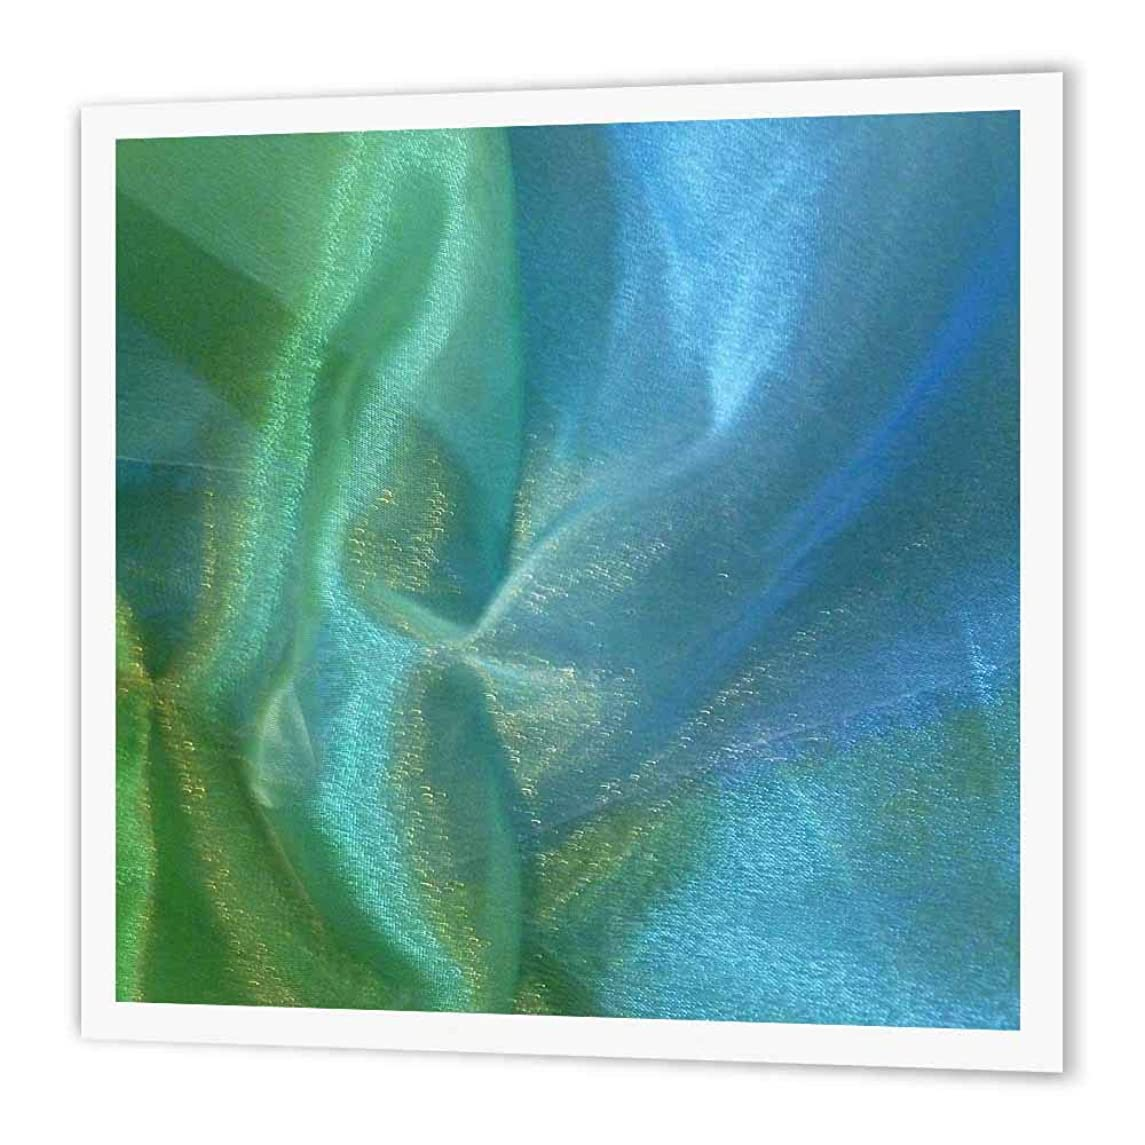 3dRose ht_14477_2 Blue Green Chiffon-Iron on Heat Transfer Paper for White Material, 6 by 6-Inch